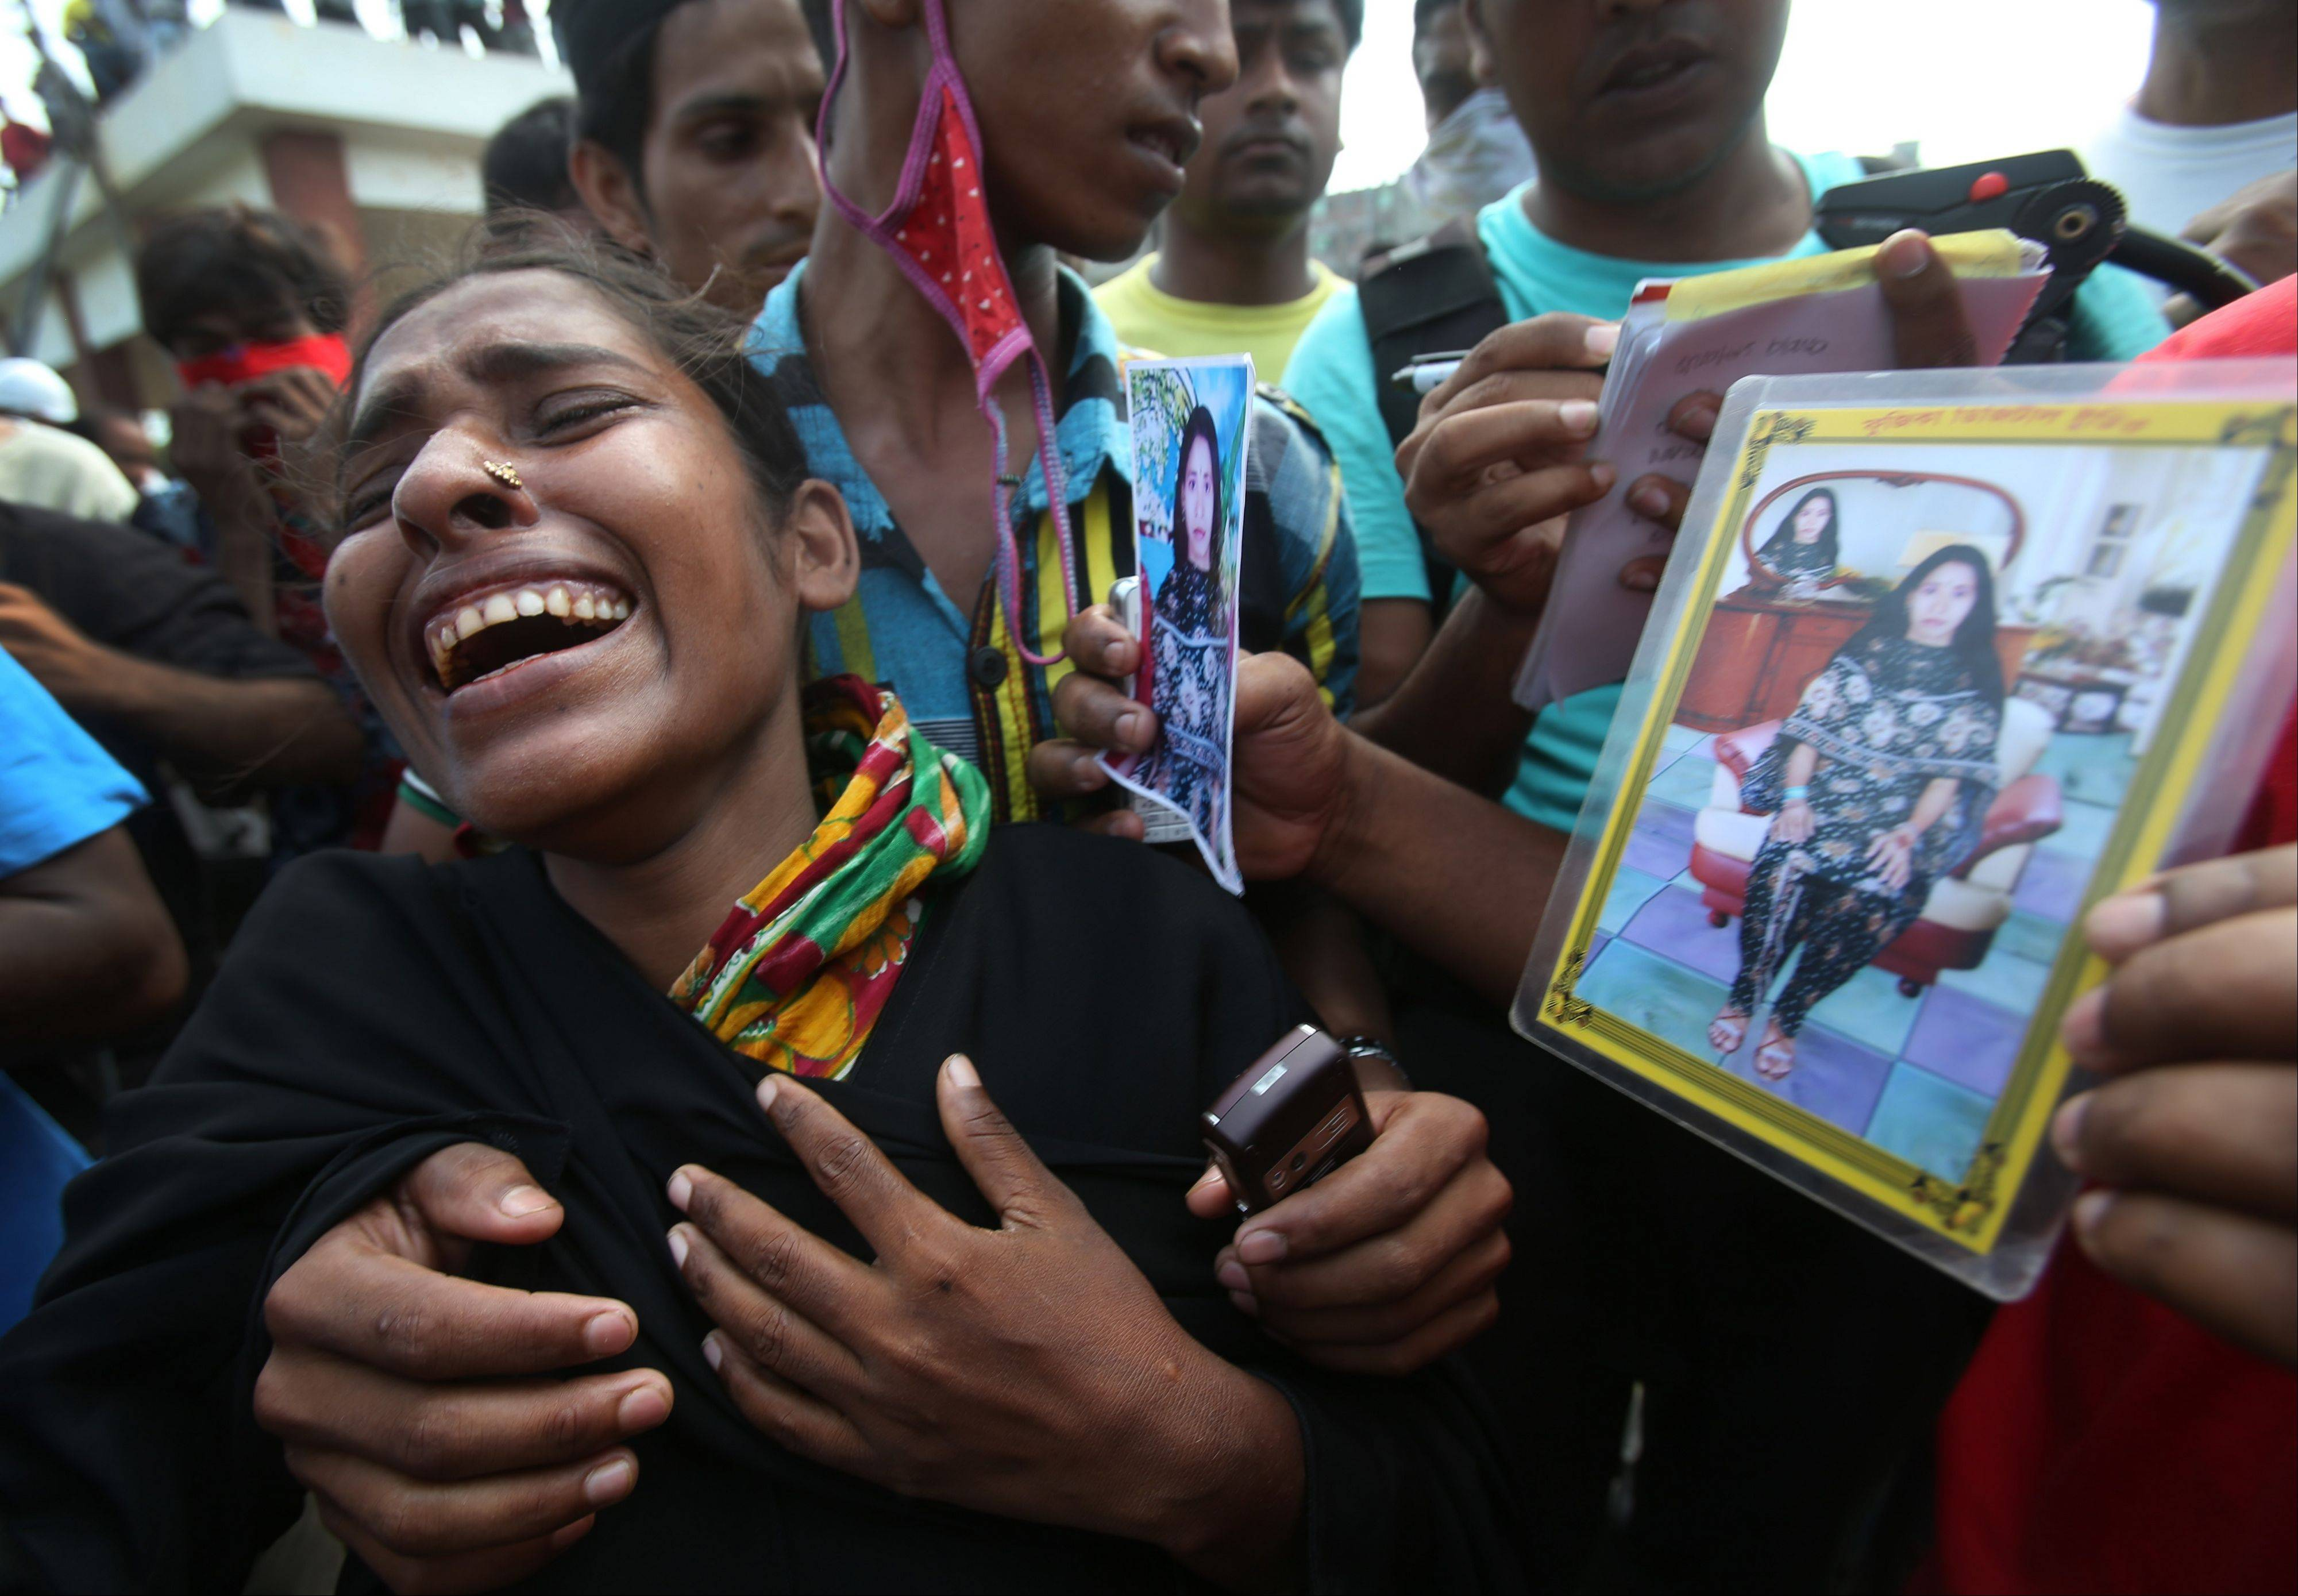 Farida, center, cries as she searches for her sister-in-law Fahima, seen in photographs. Just moments before Fahima was to be placed in one of the dozens of unmarked graves dug for victims of Bangladesh's building collapse, Farida was able to claim and leave with her sister-in-law's body.